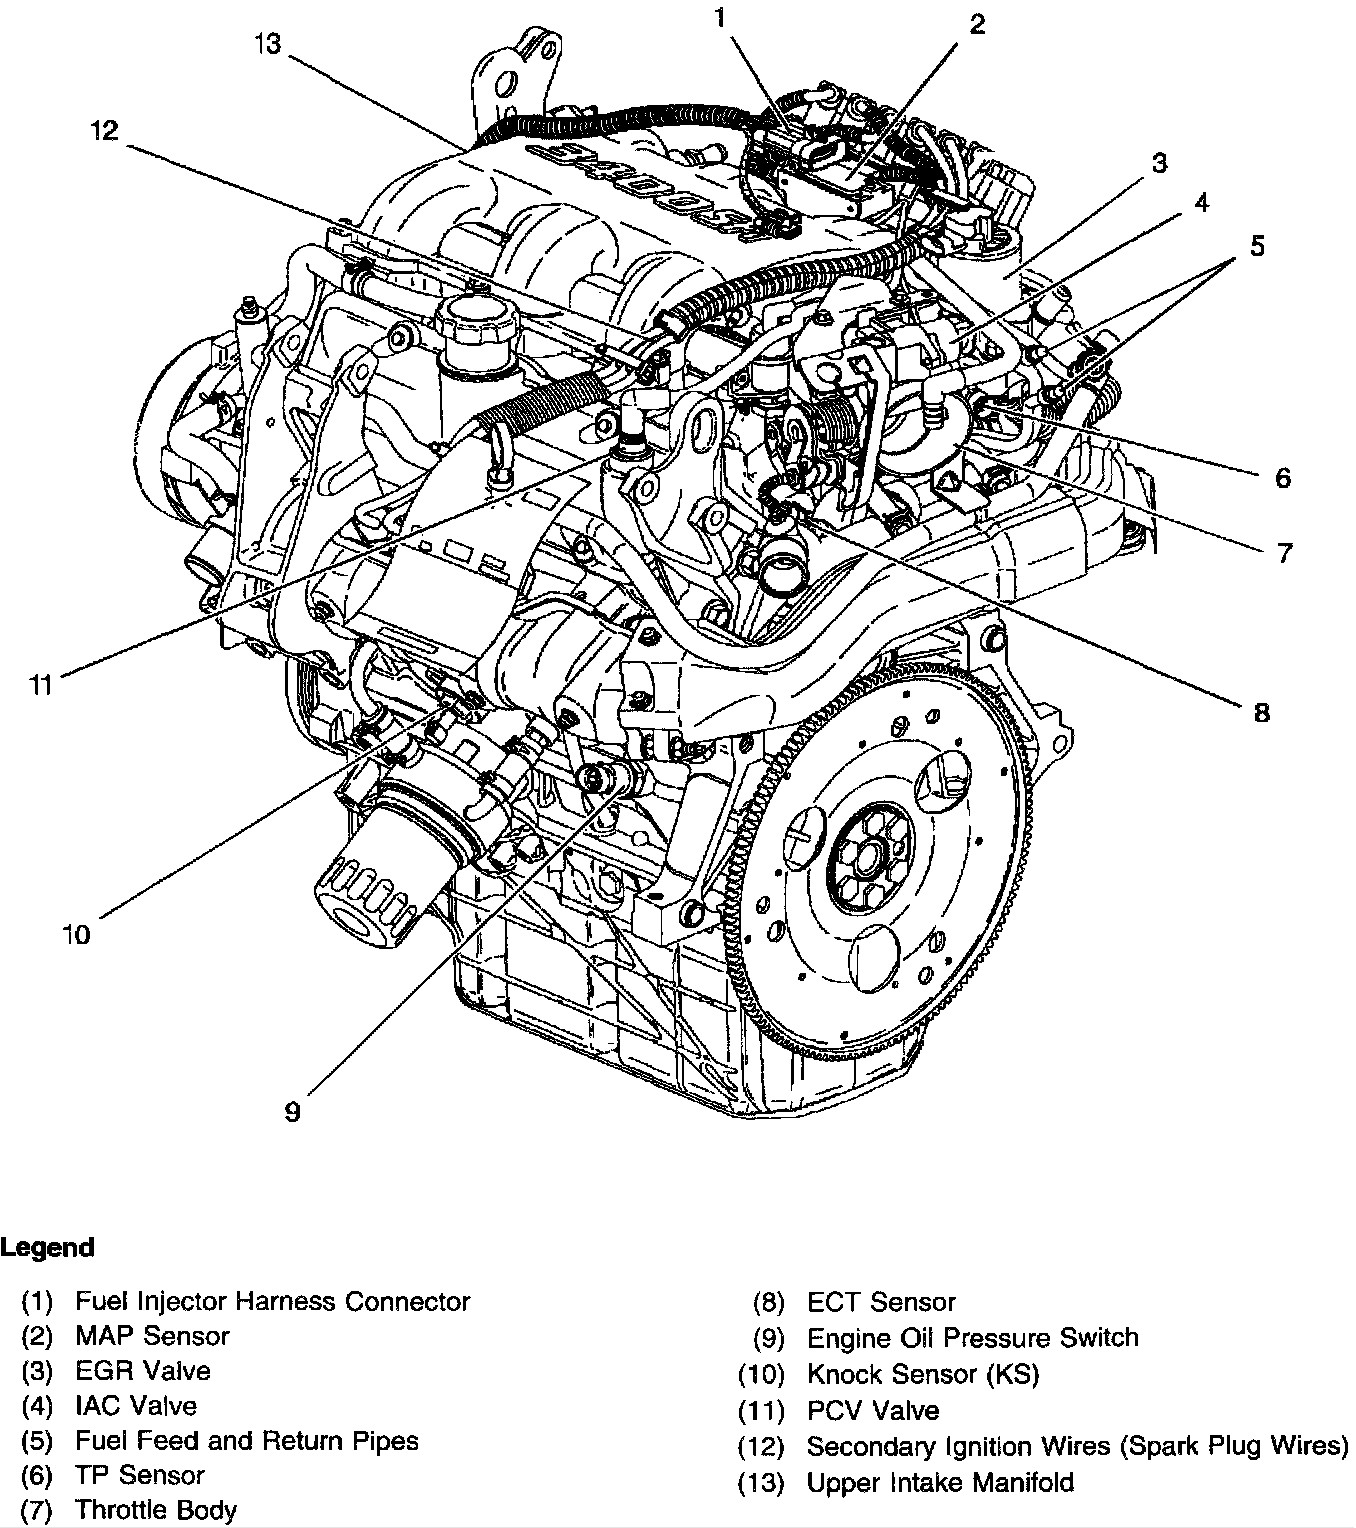 pontiac 3 8 engine diagram - wiring diagrams site hard-private -  hard-private.geasparquet.it  geas parquet